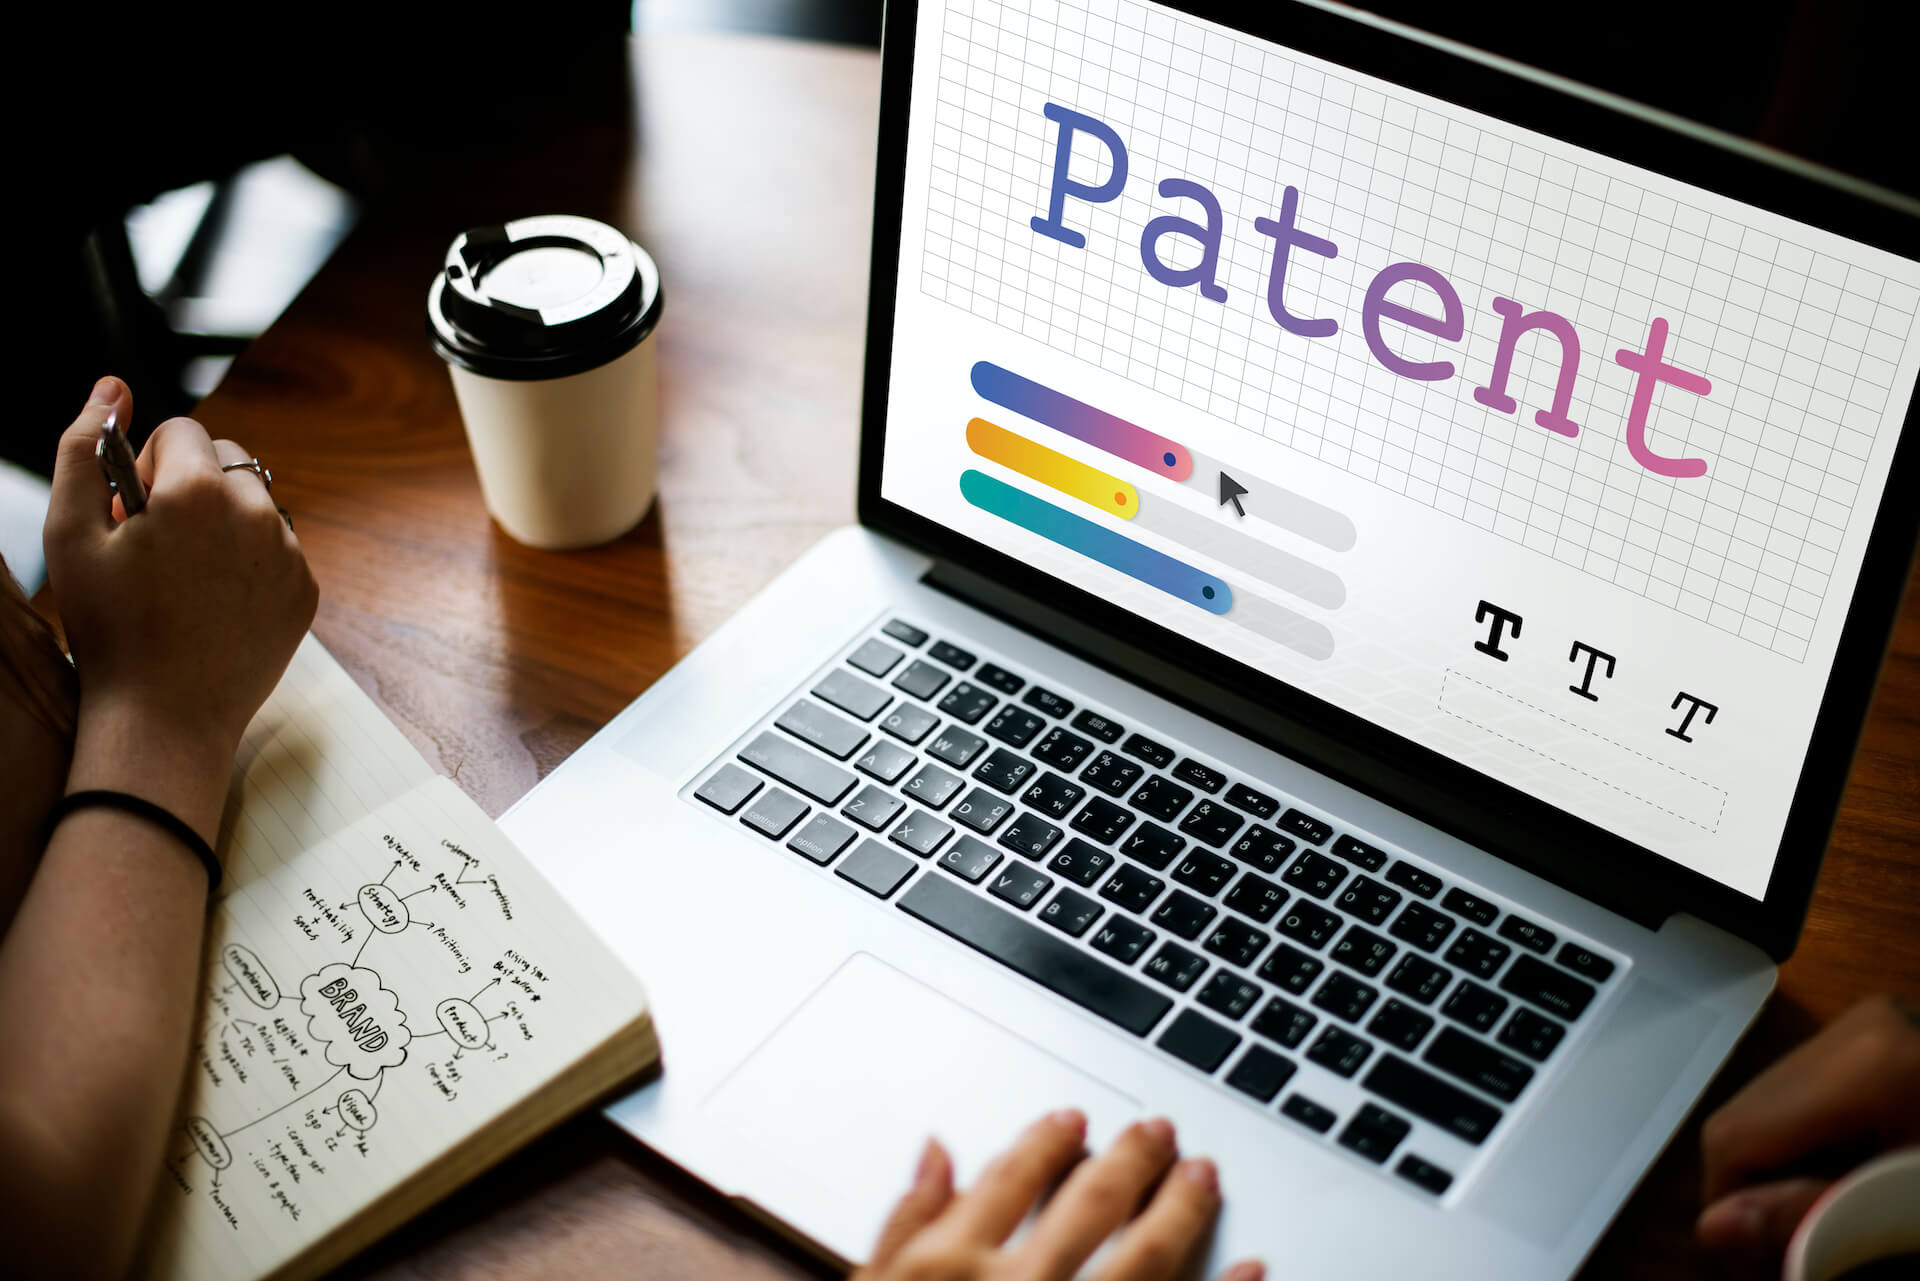 Patent (Amendment) Rules 2020